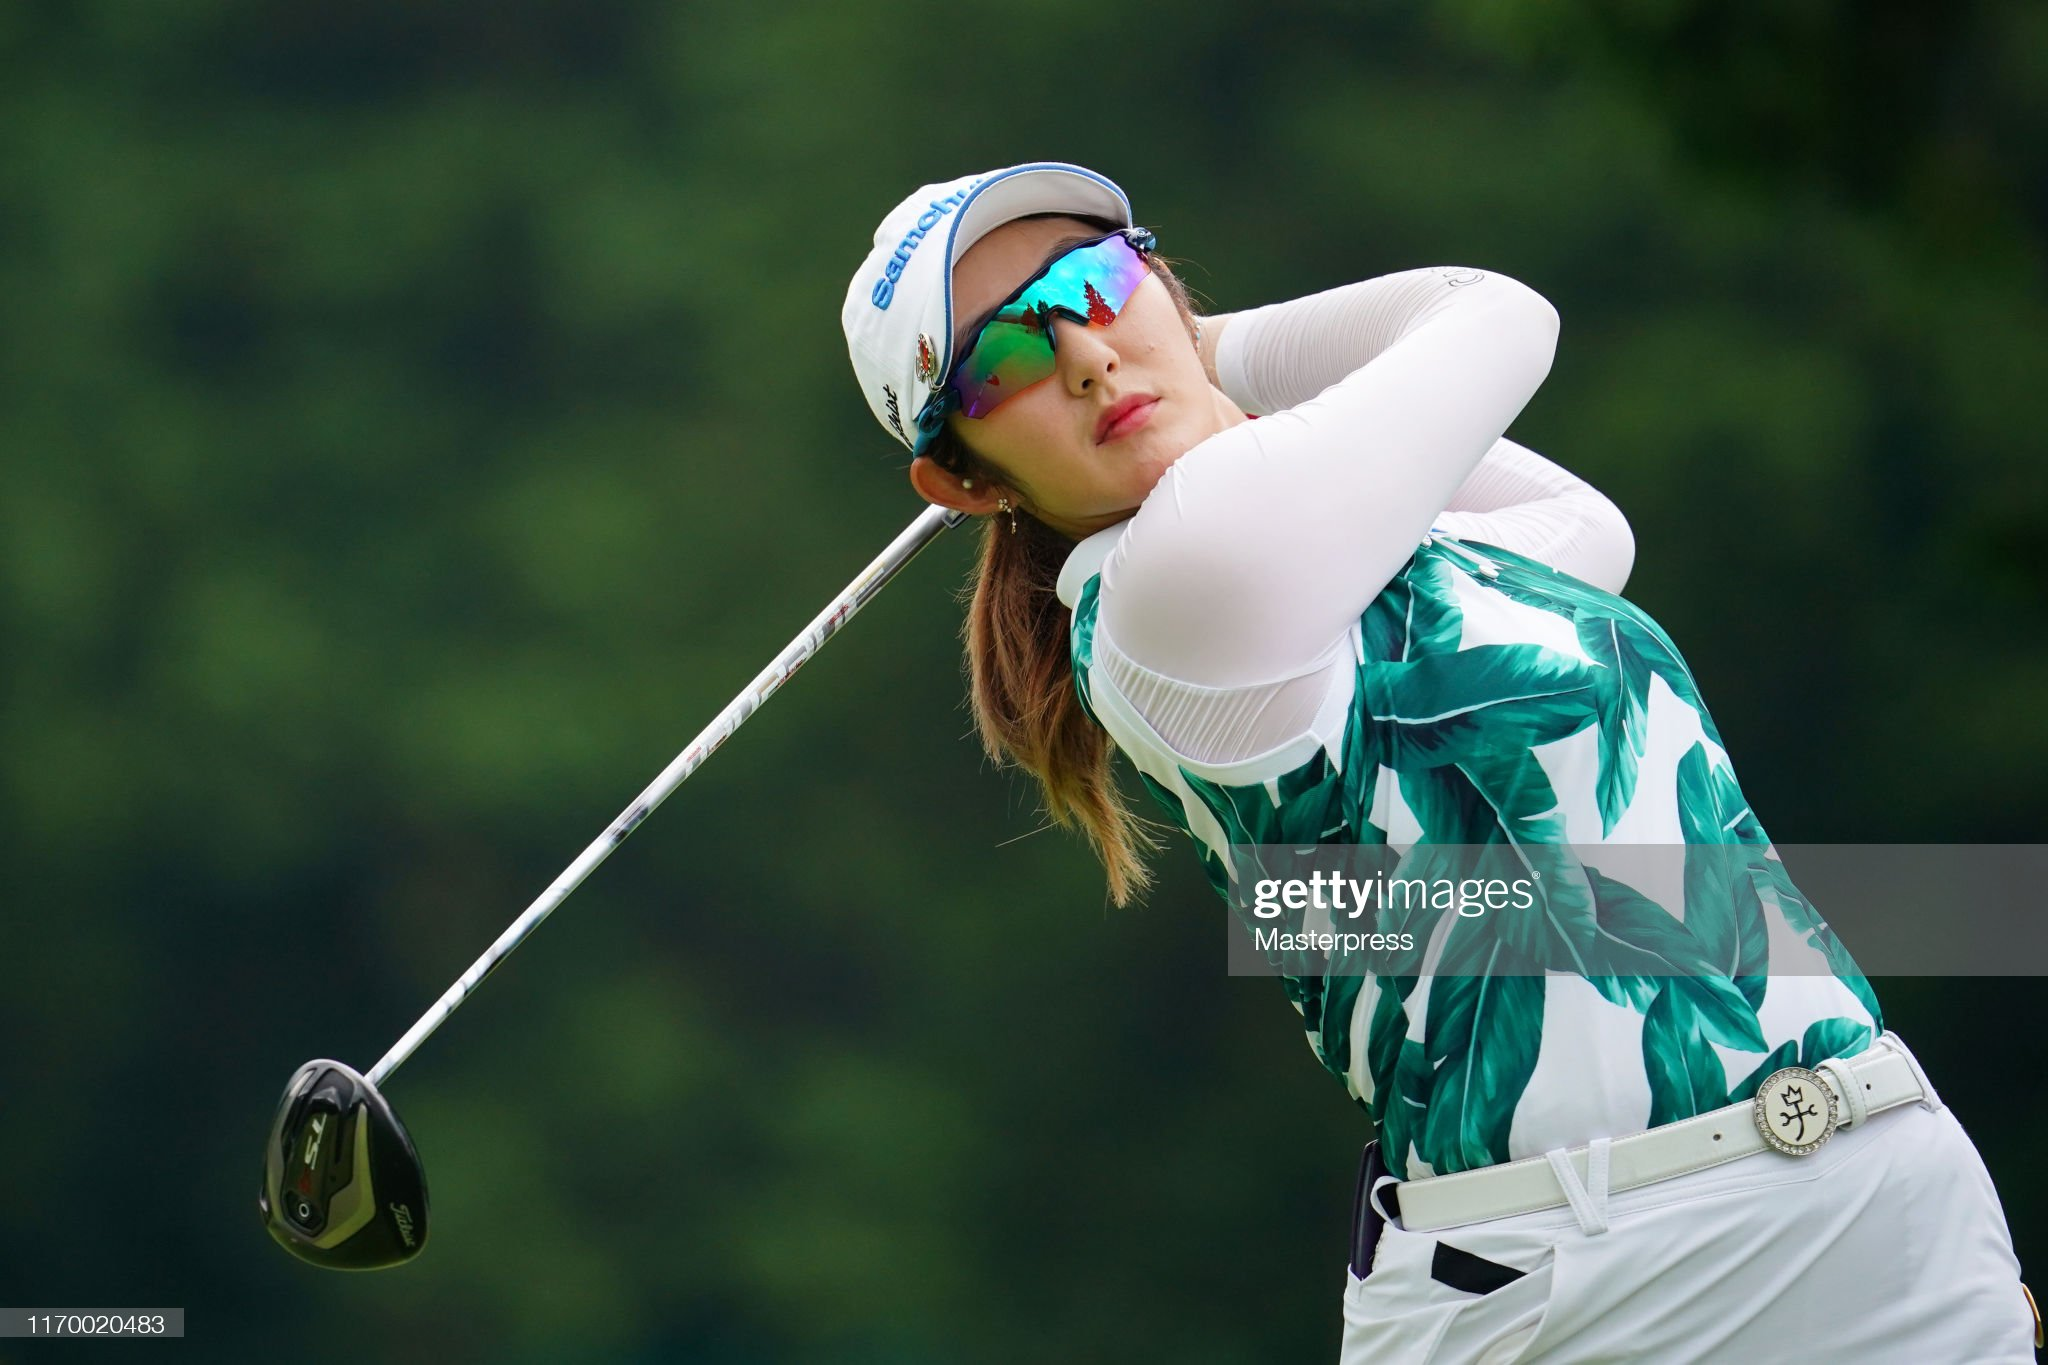 https://media.gettyimages.com/photos/seonwoo-bae-of-south-korea-hits-her-tee-shot-on-the-7th-hole-during-picture-id1170020483?s=2048x2048